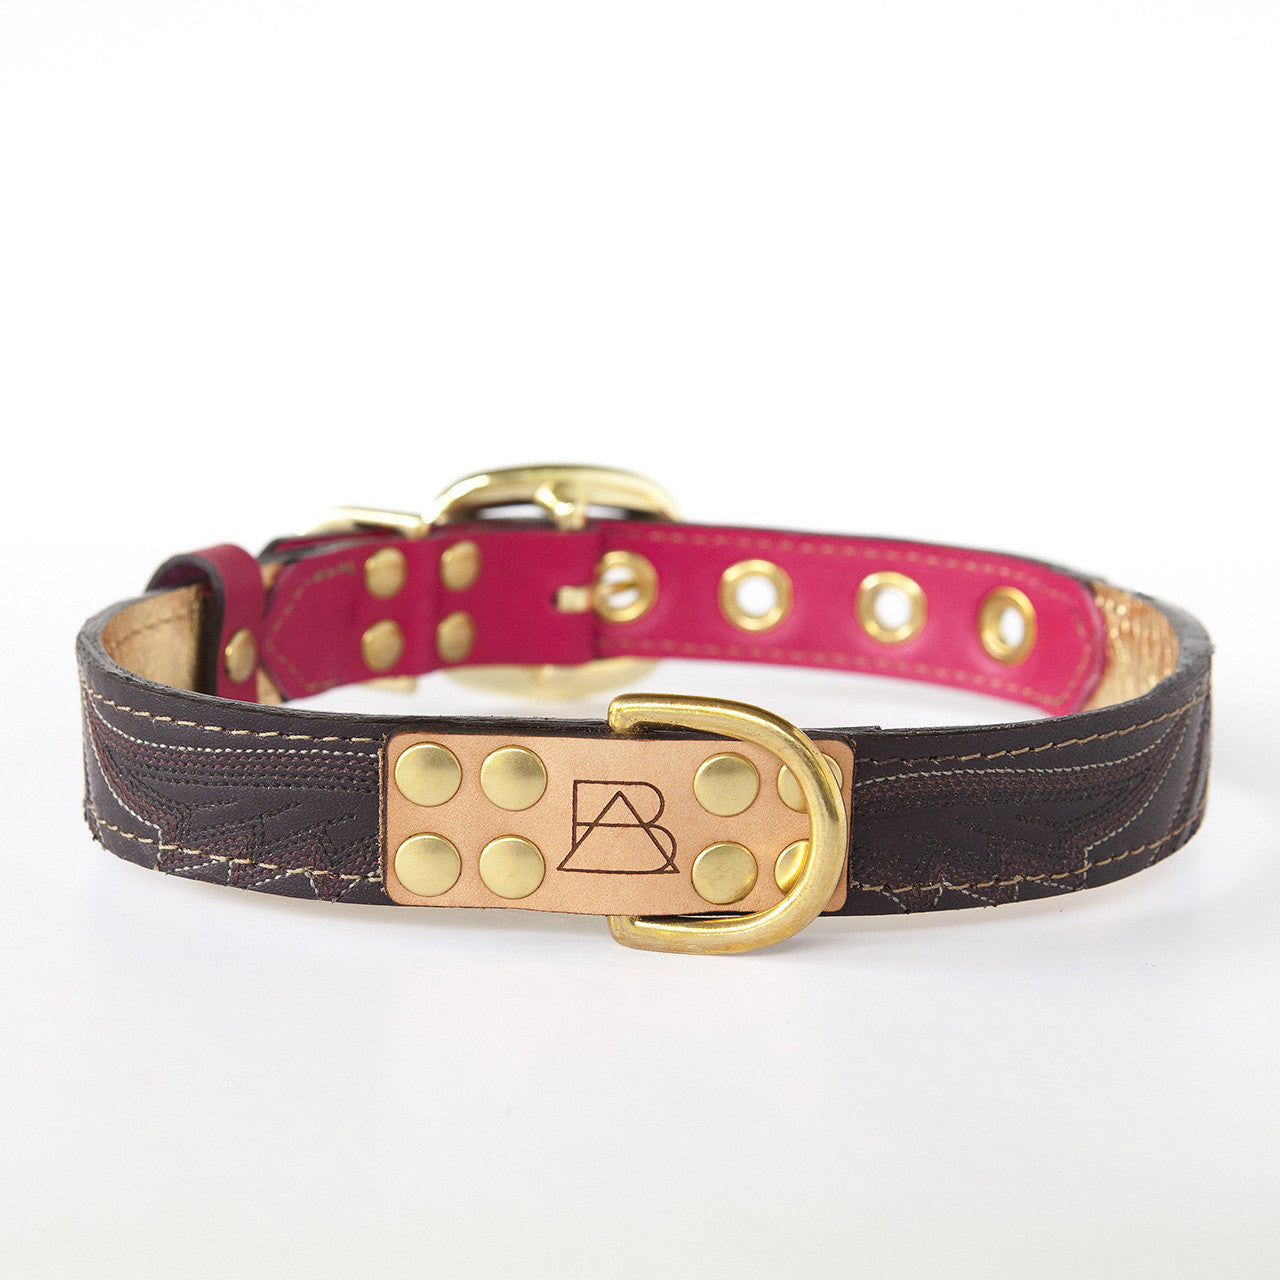 Hot Pink Dog Collar with Chocolate Leather + Chocolate and Tan Stitching (front view)